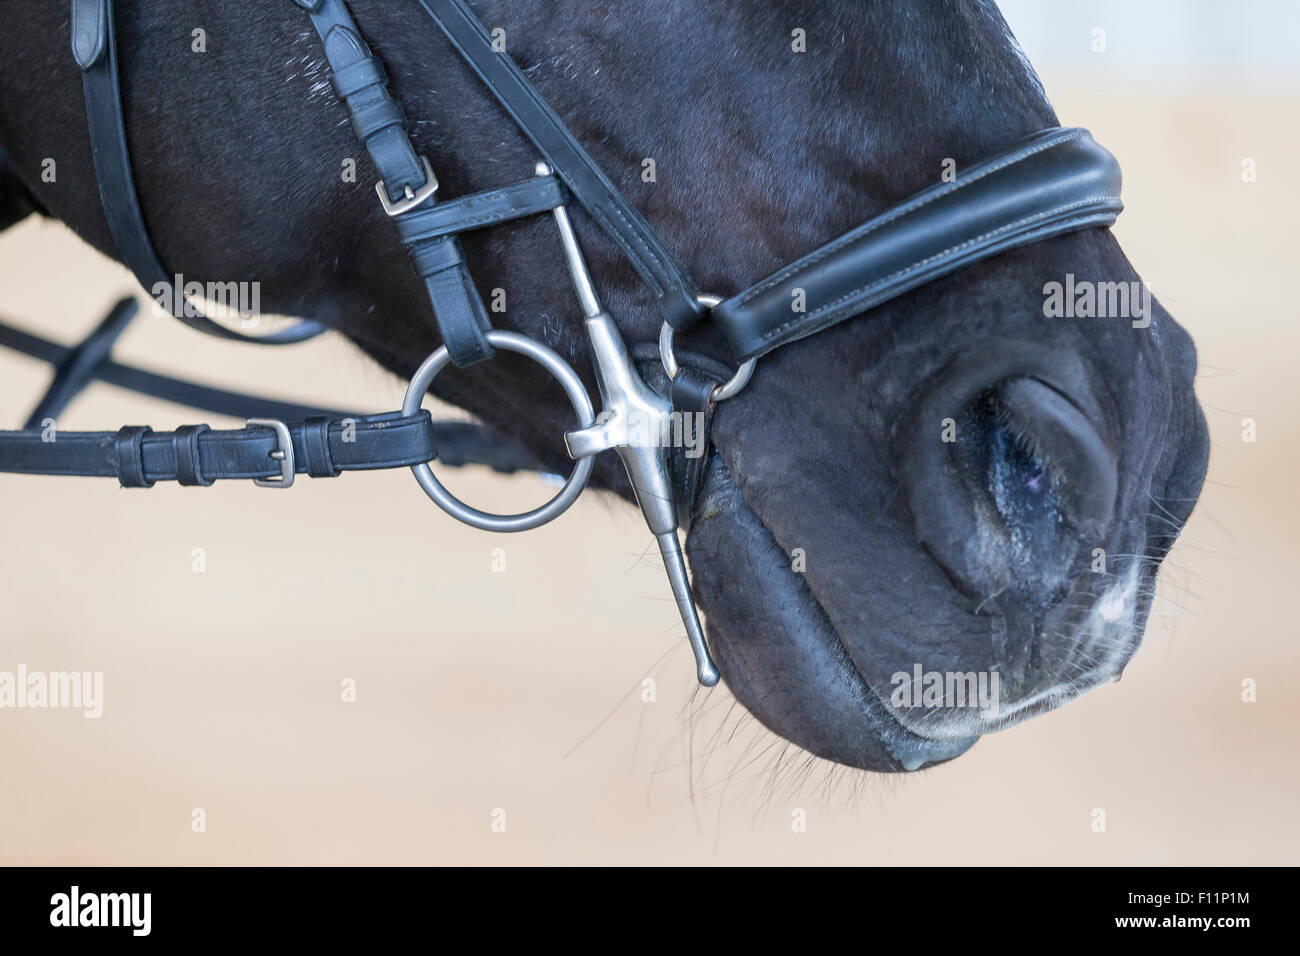 Noir Cheval Warmblood snaffle adultes joues Photo Stock